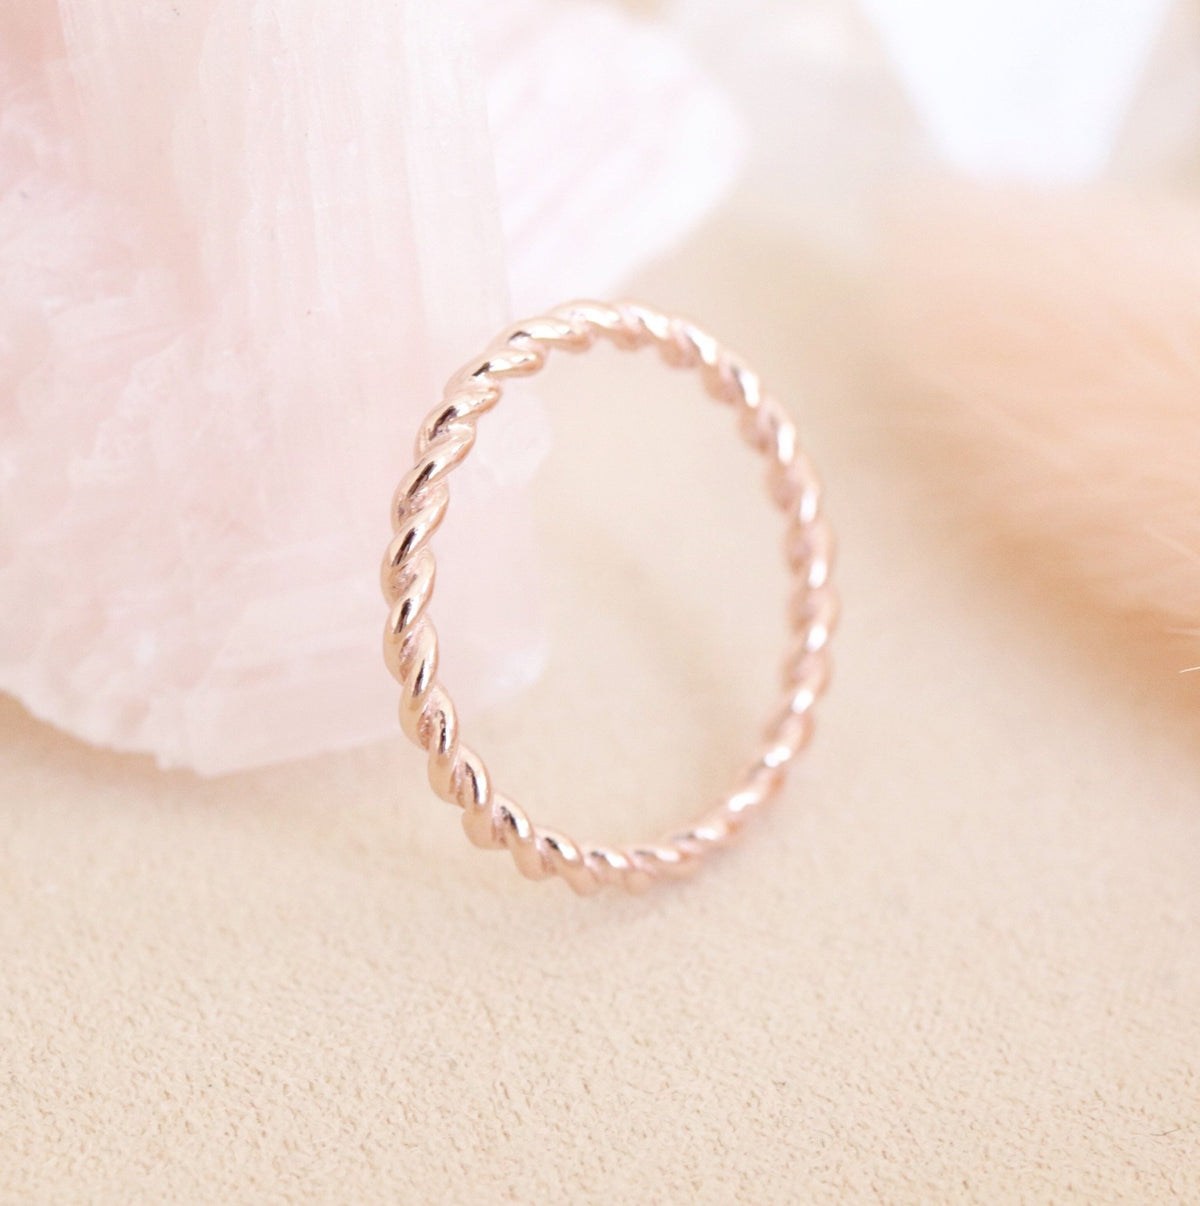 POISE THIN CABLE LINK BAND RING - ROSE GOLD - SO PRETTY CARA COTTER